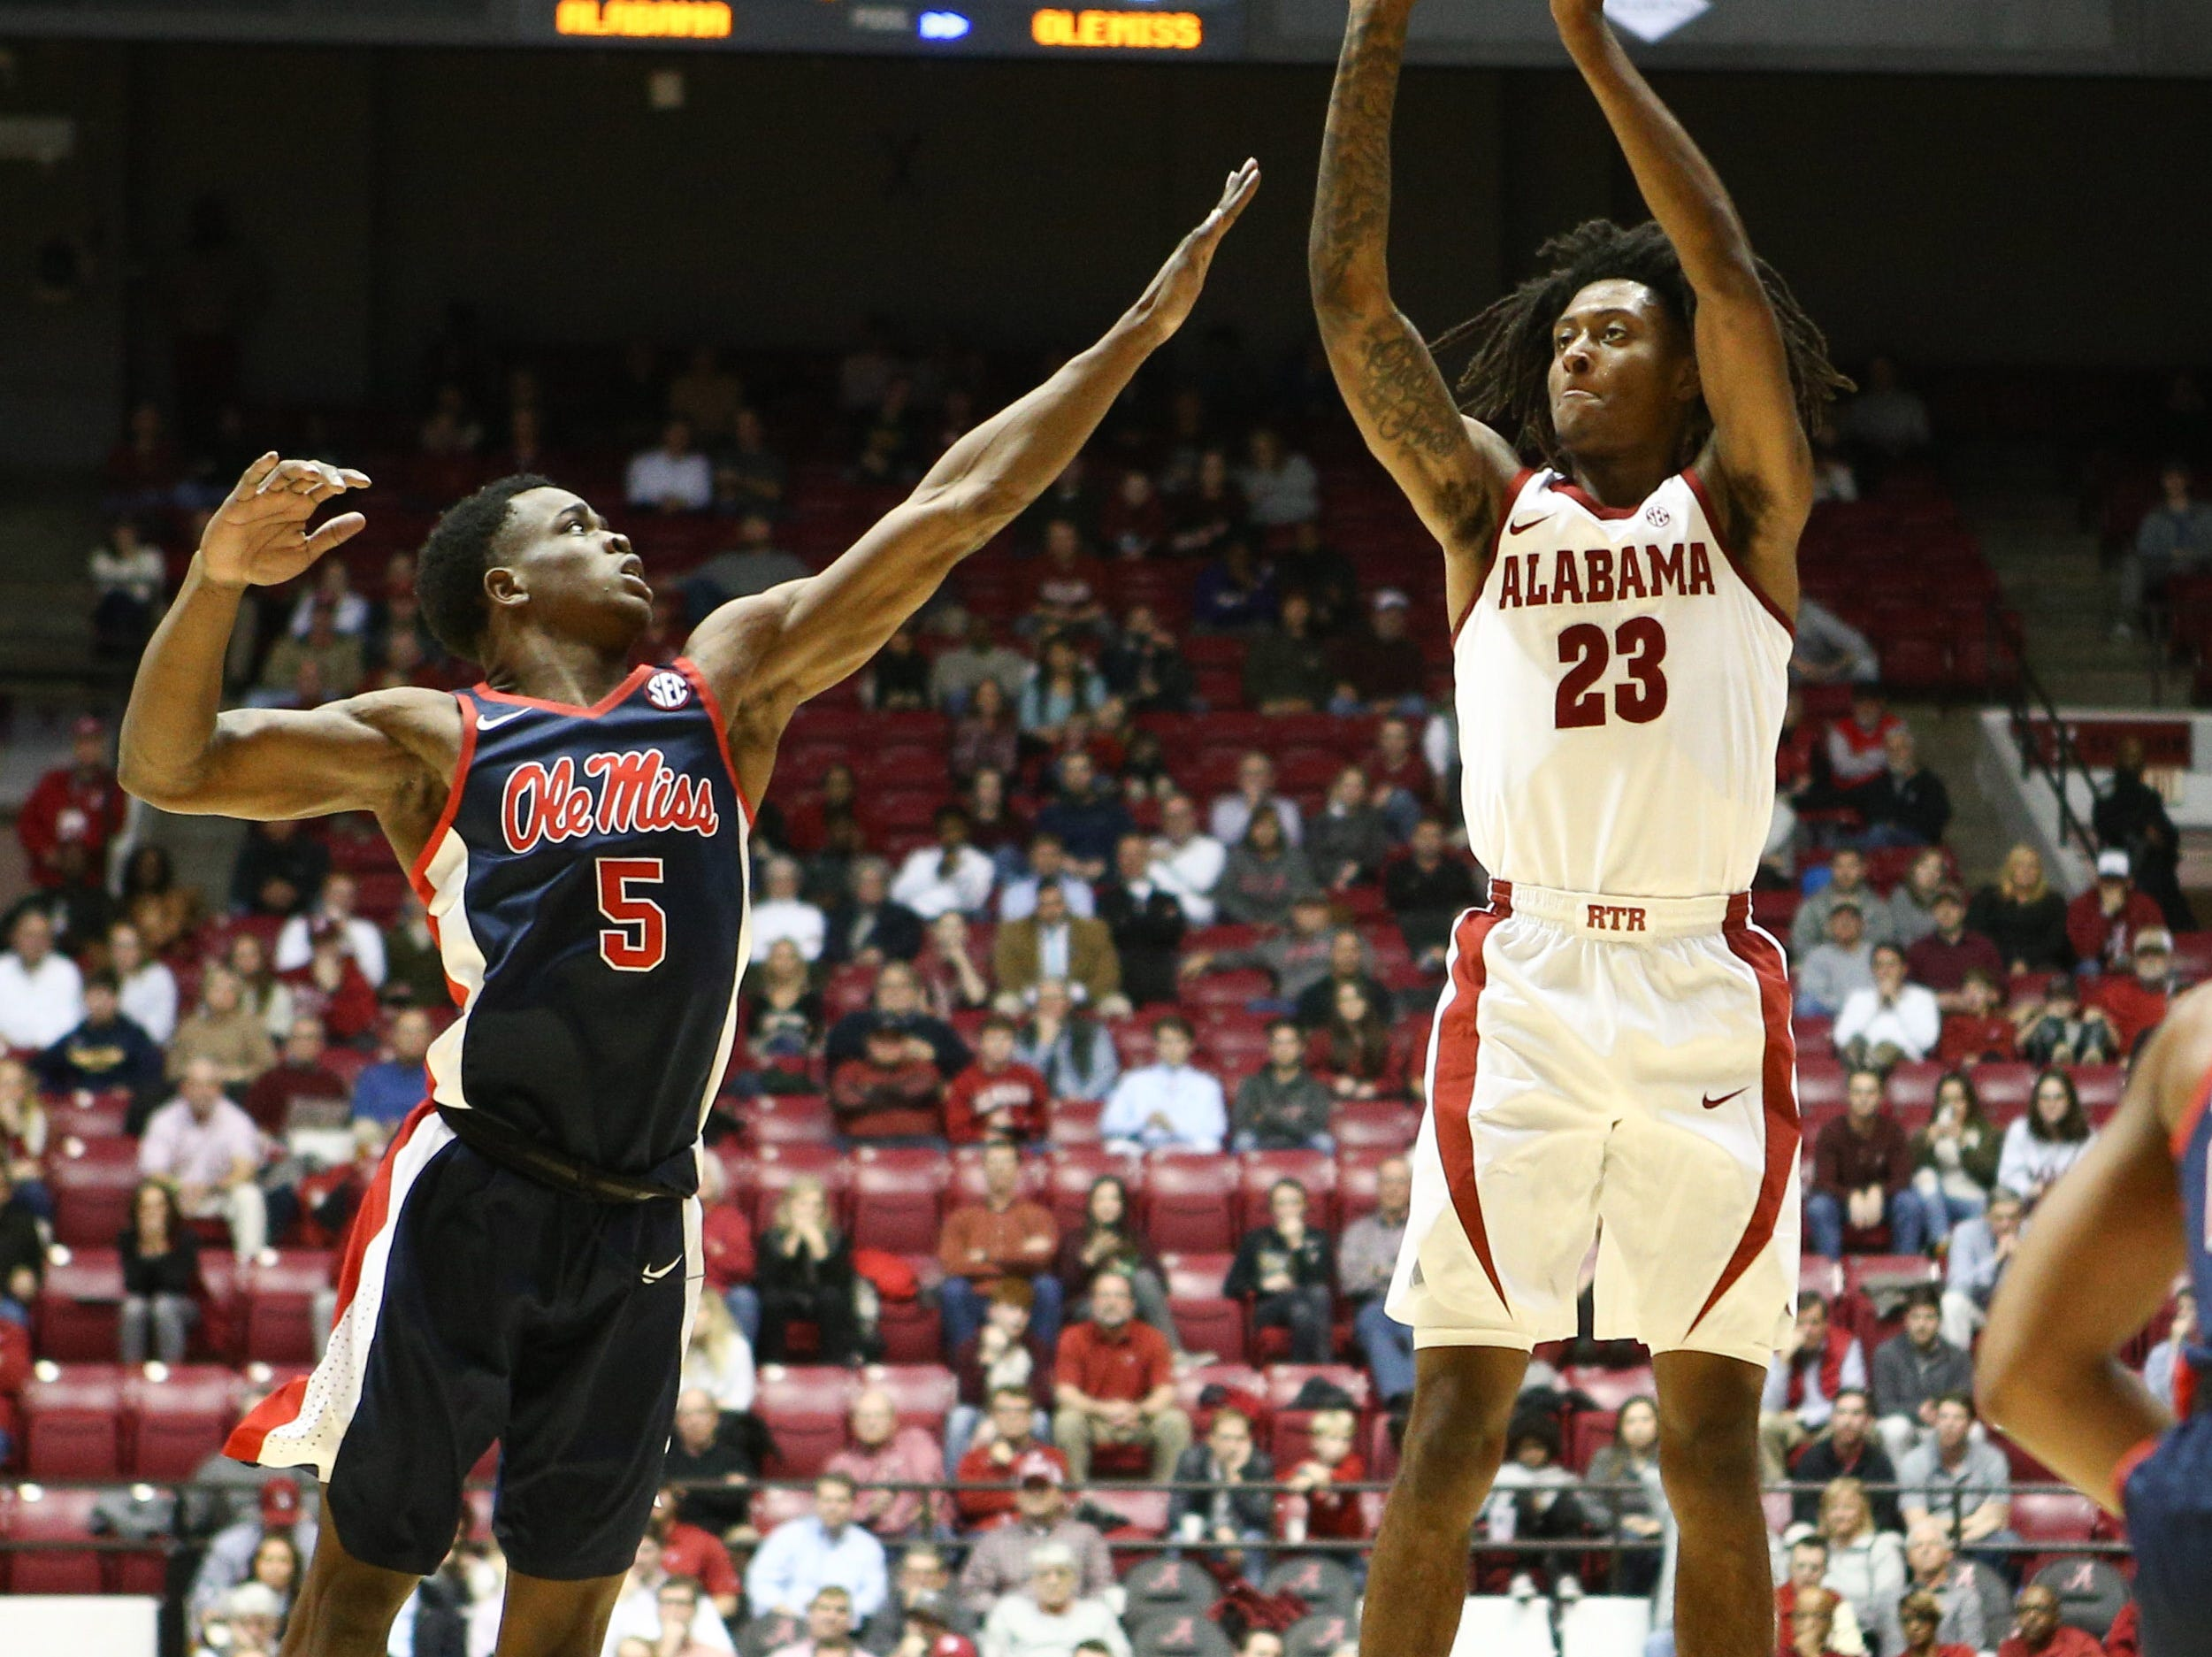 Jan 22, 2019; Tuscaloosa, AL, USA; Alabama Crimson Tide guard John Petty (23) shoots against Mississippi Rebels guard Brian Halums (5) during the second half at Coleman Coliseum. Mandatory Credit: Marvin Gentry-USA TODAY Sports